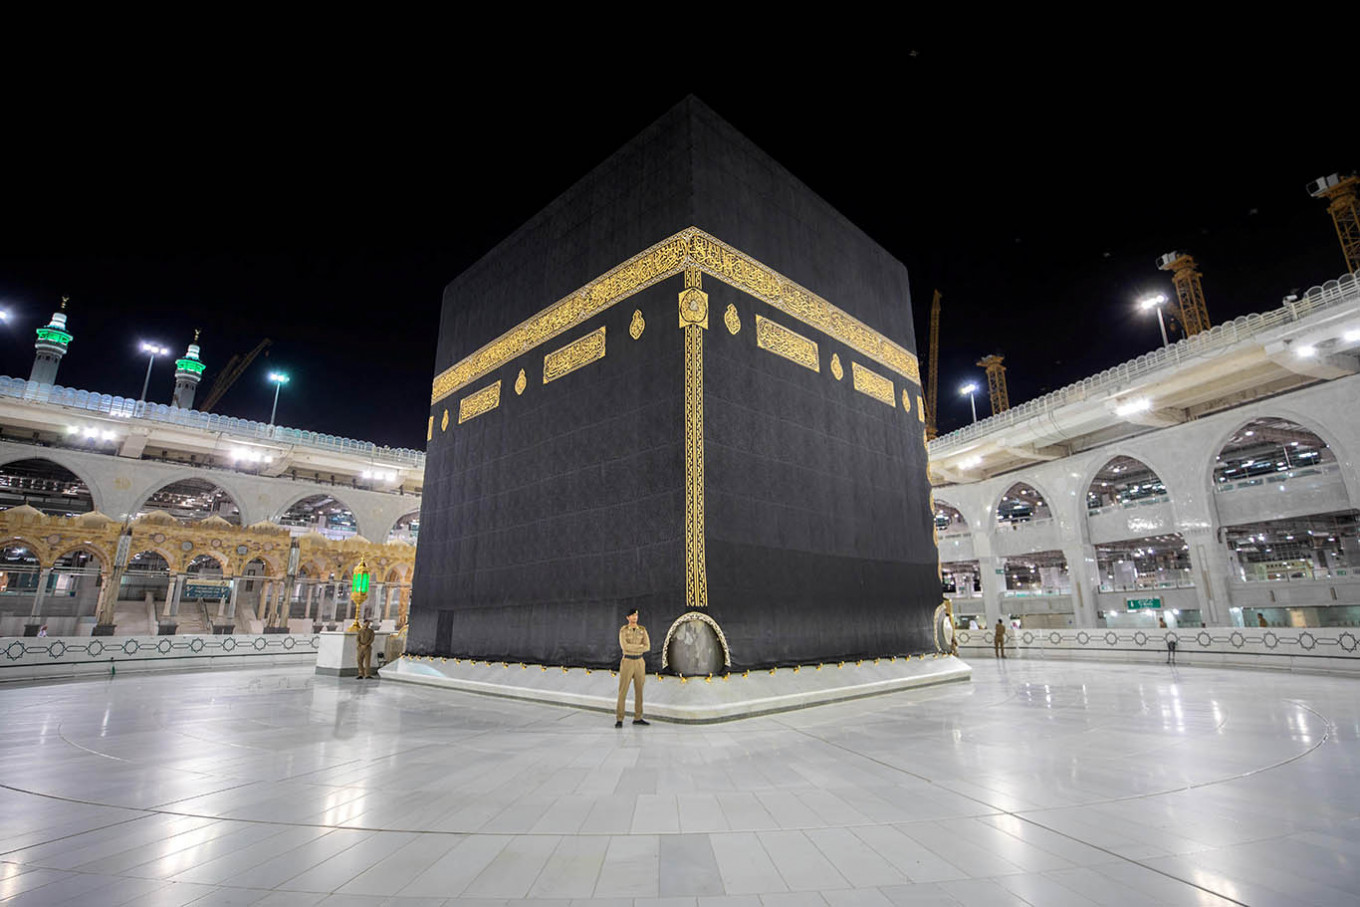 COVID-19: Govt hopes Saudi Arabia will announce decision on haj soon